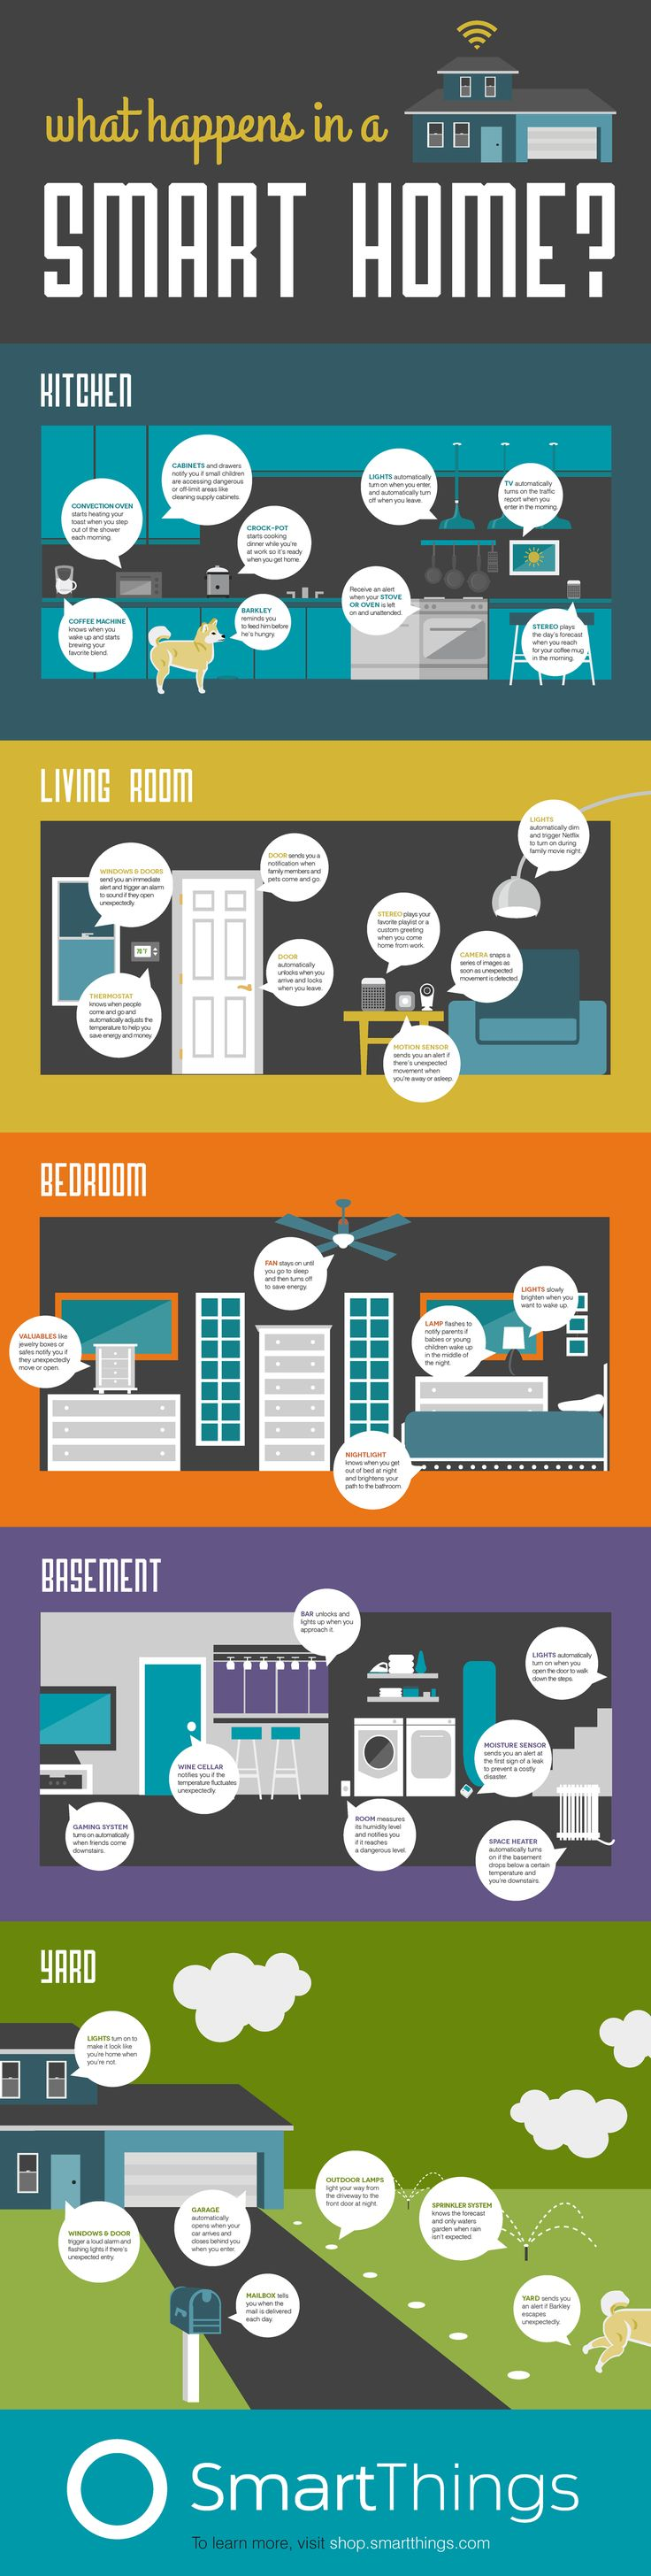 smart home on pinterest explore 50 ideas with smart home technology smart home control and smart home automation and more [ 736 x 2911 Pixel ]